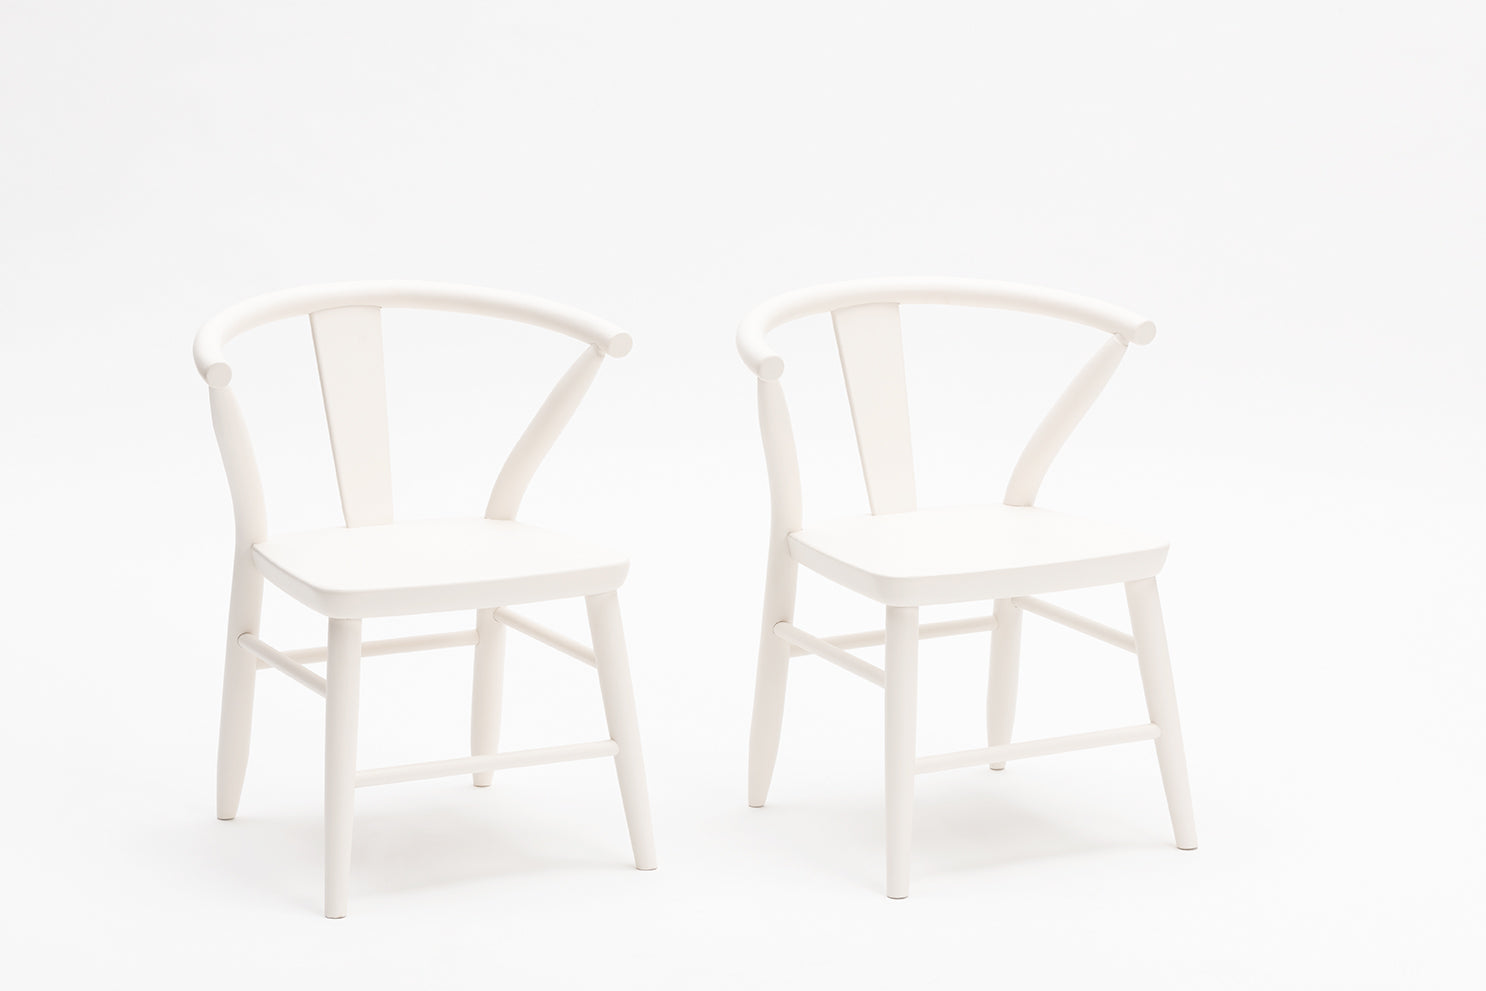 Wooden Play Chairs (Pair) - White 1